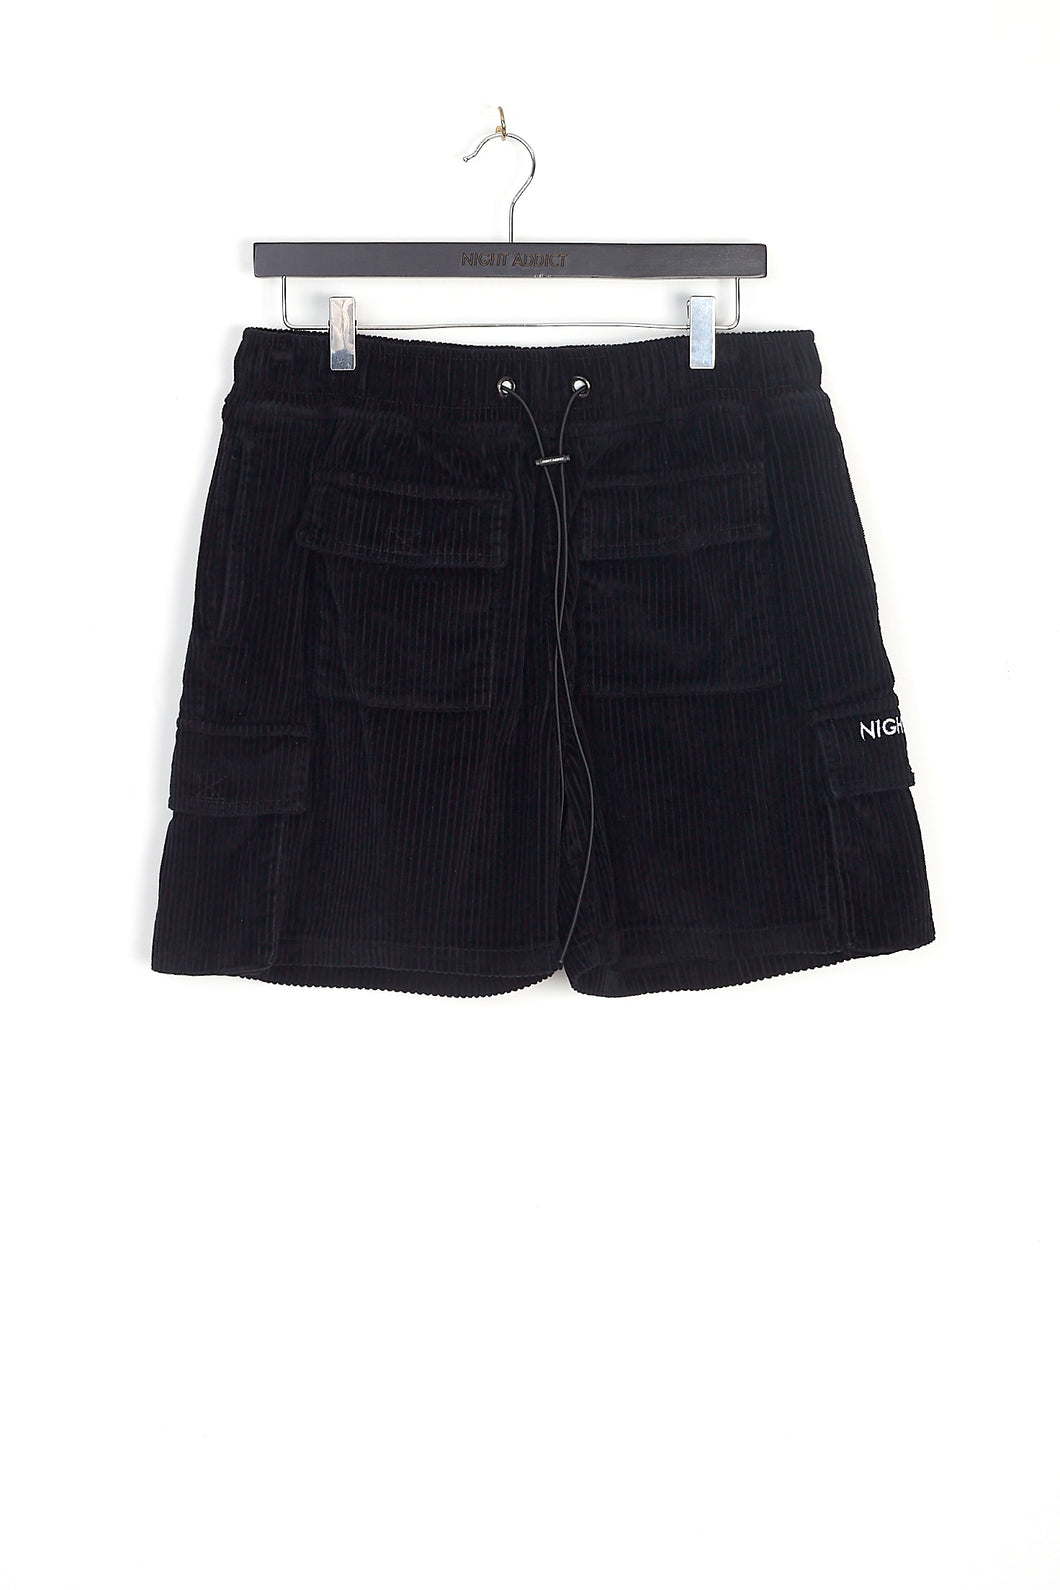 CORDUROY CARGO SHORTS - BLACK